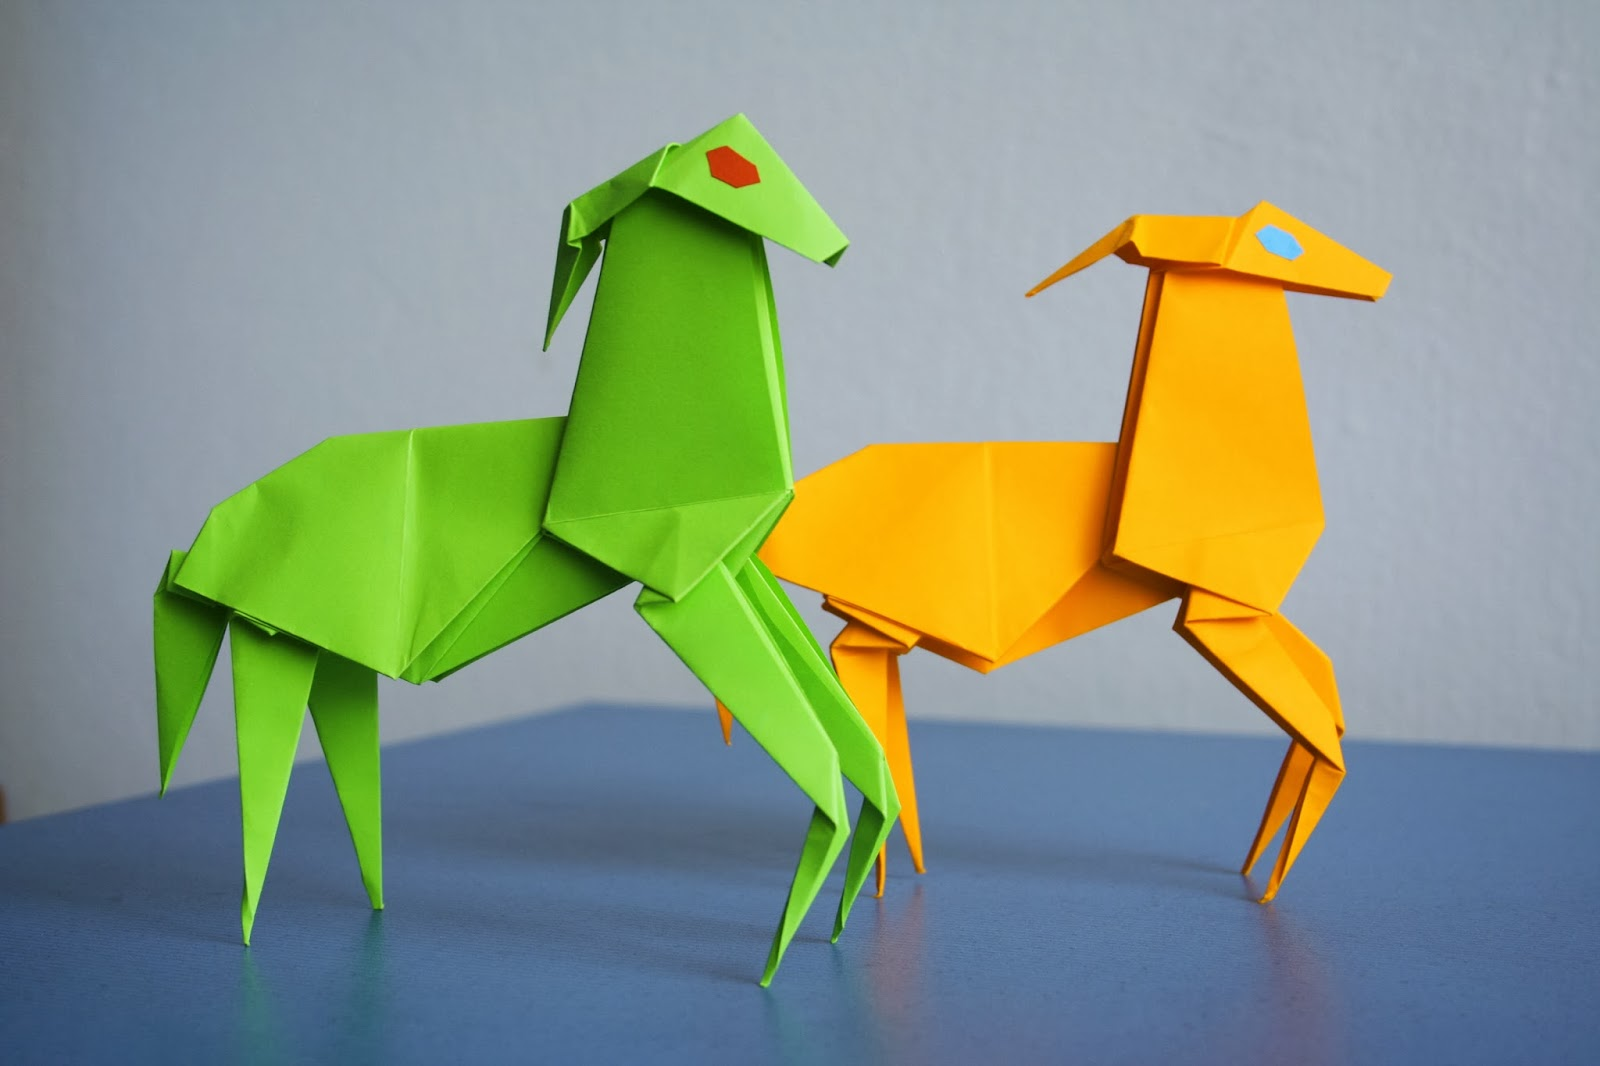 Origami : Amazing Art Of Paper Folding | Most Unbelievable ... - photo#18